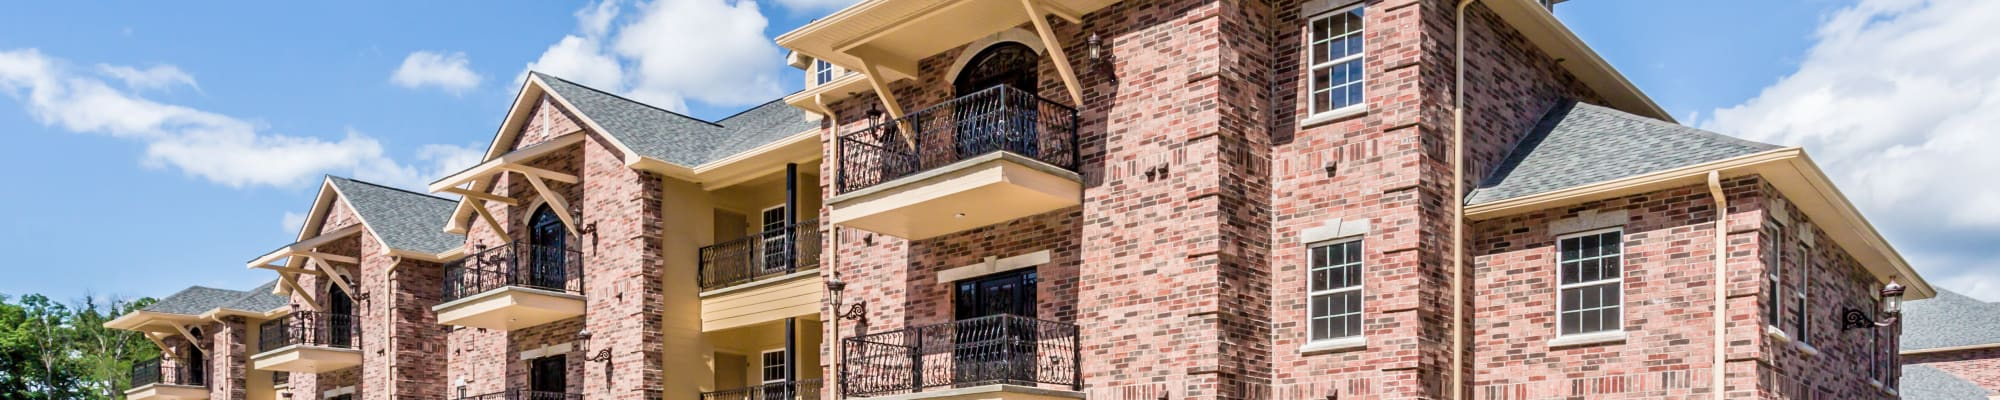 Amenities offered at Arlo Luxury Apartment Homes in Little Rock, Arkansas